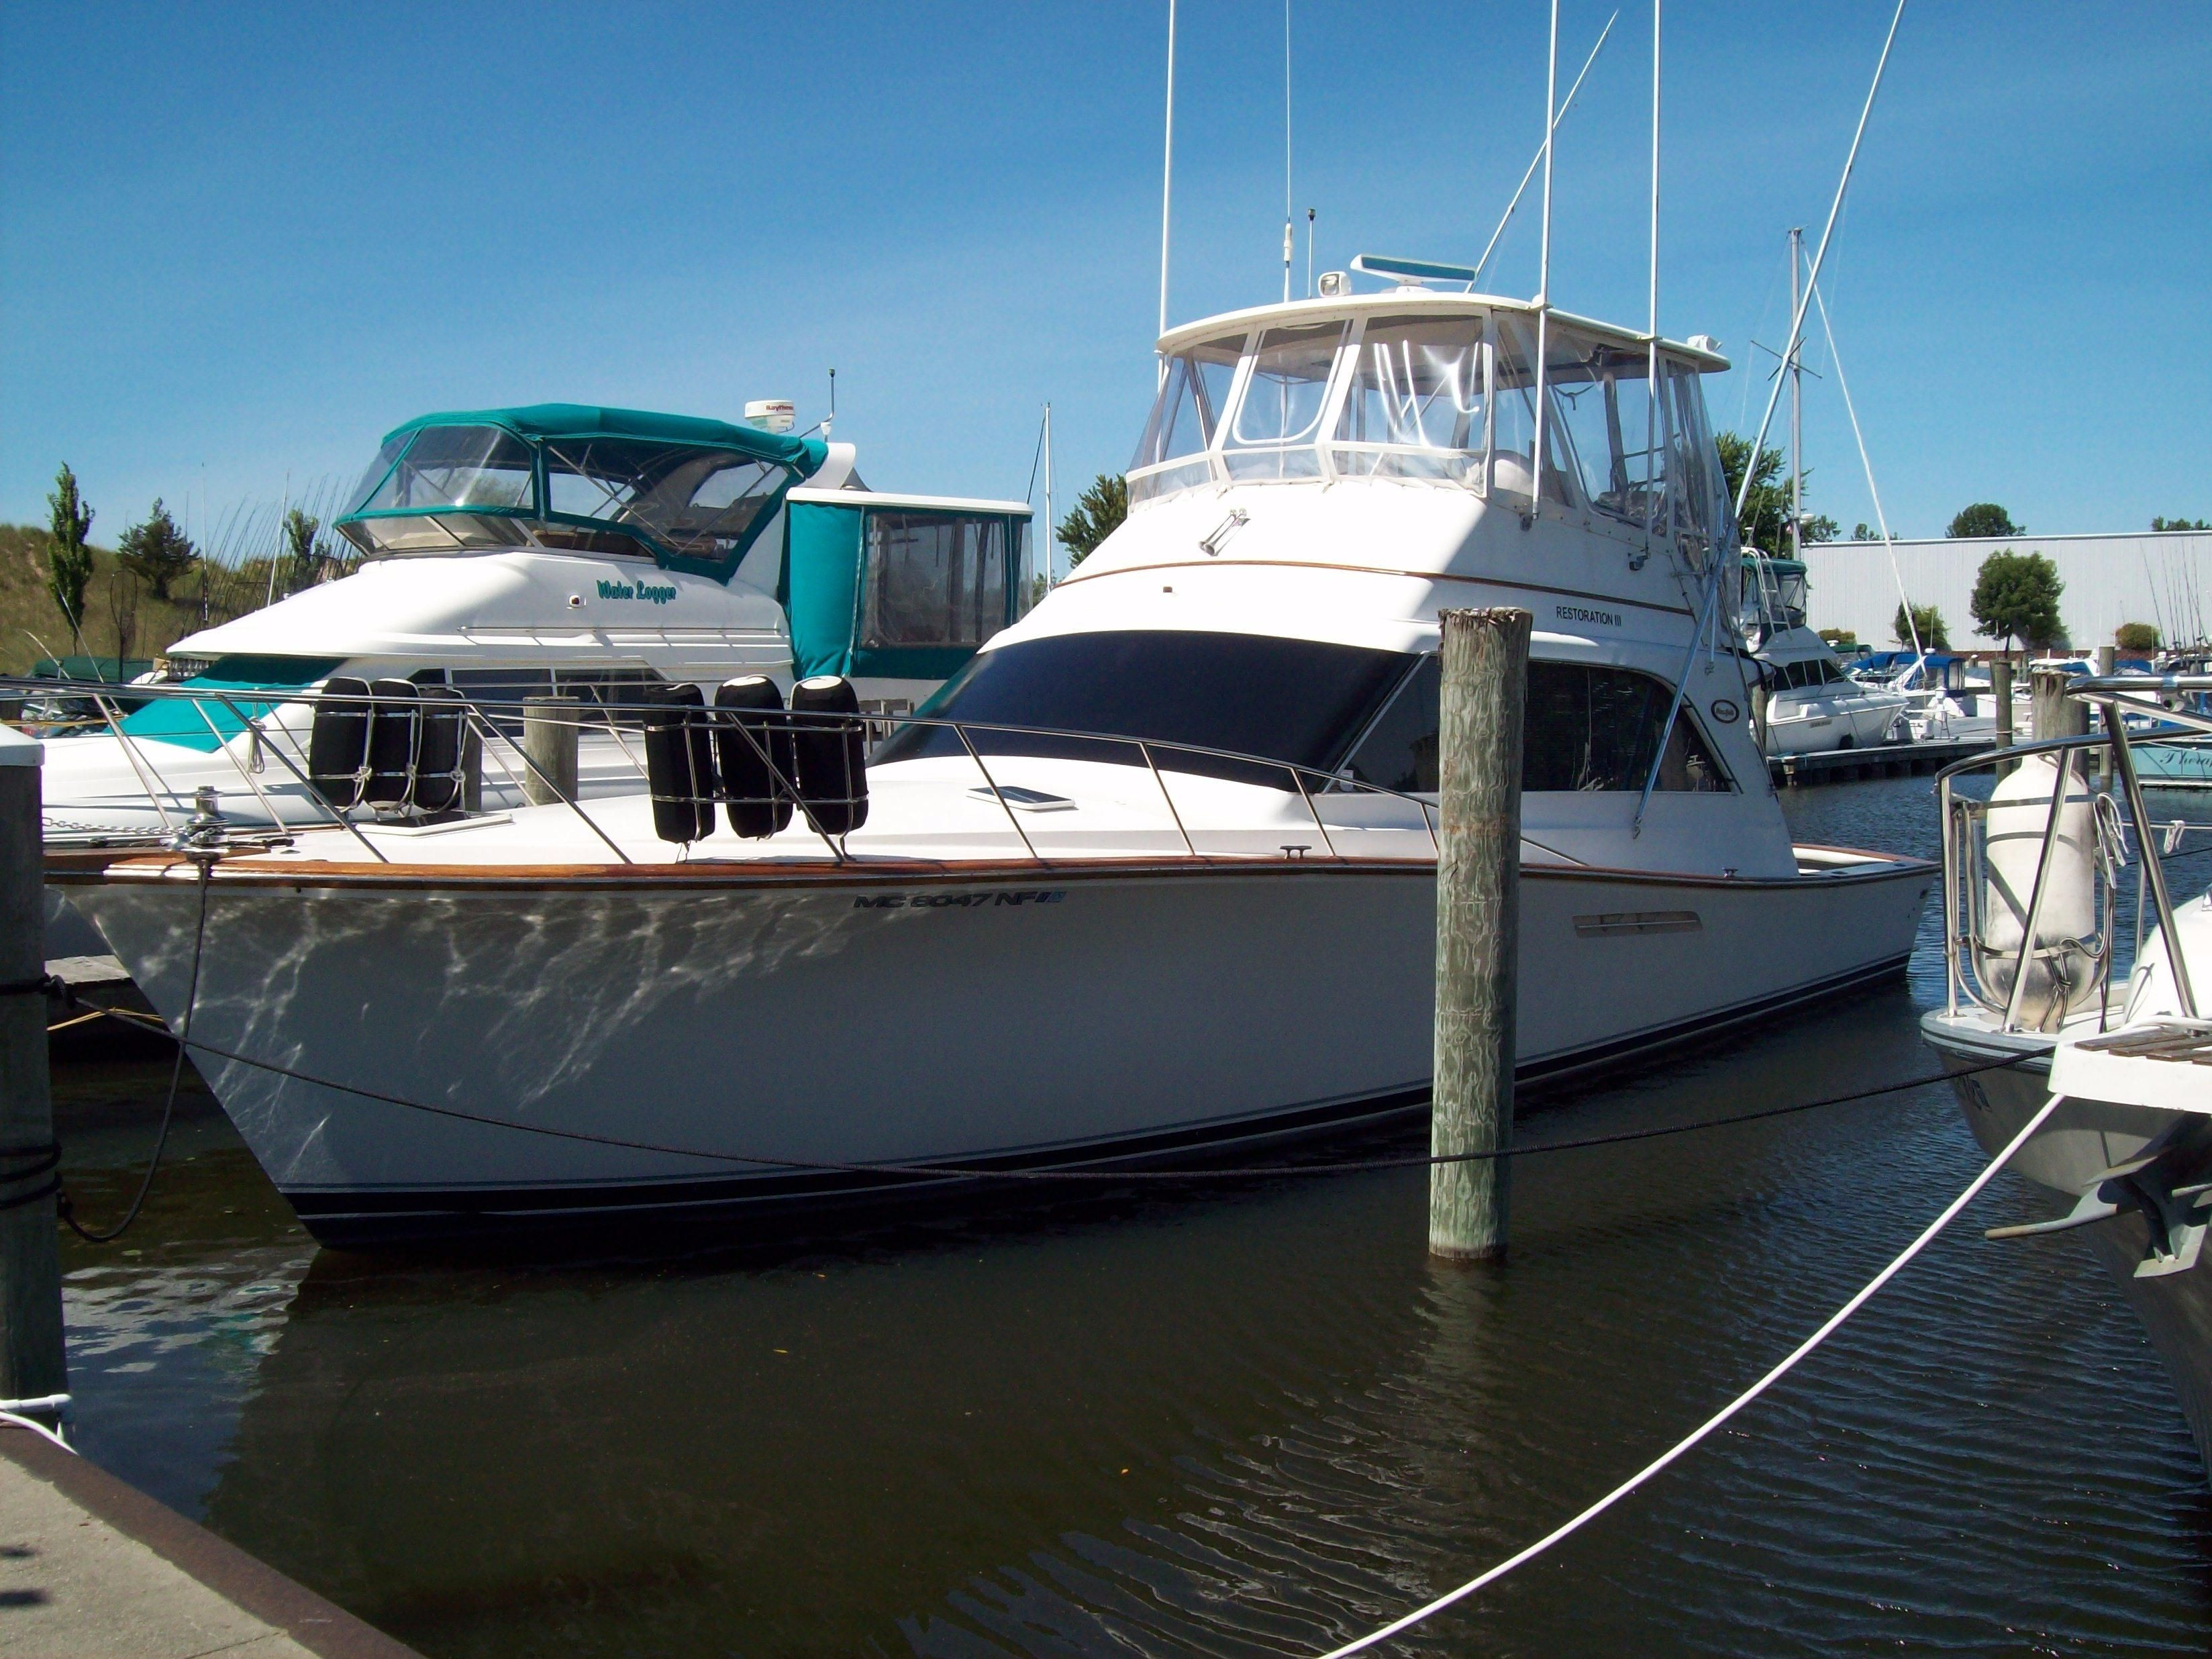 1987 ocean yachts 48 super sport power boat for sale www for Ocean yachts 48 motor yacht for sale